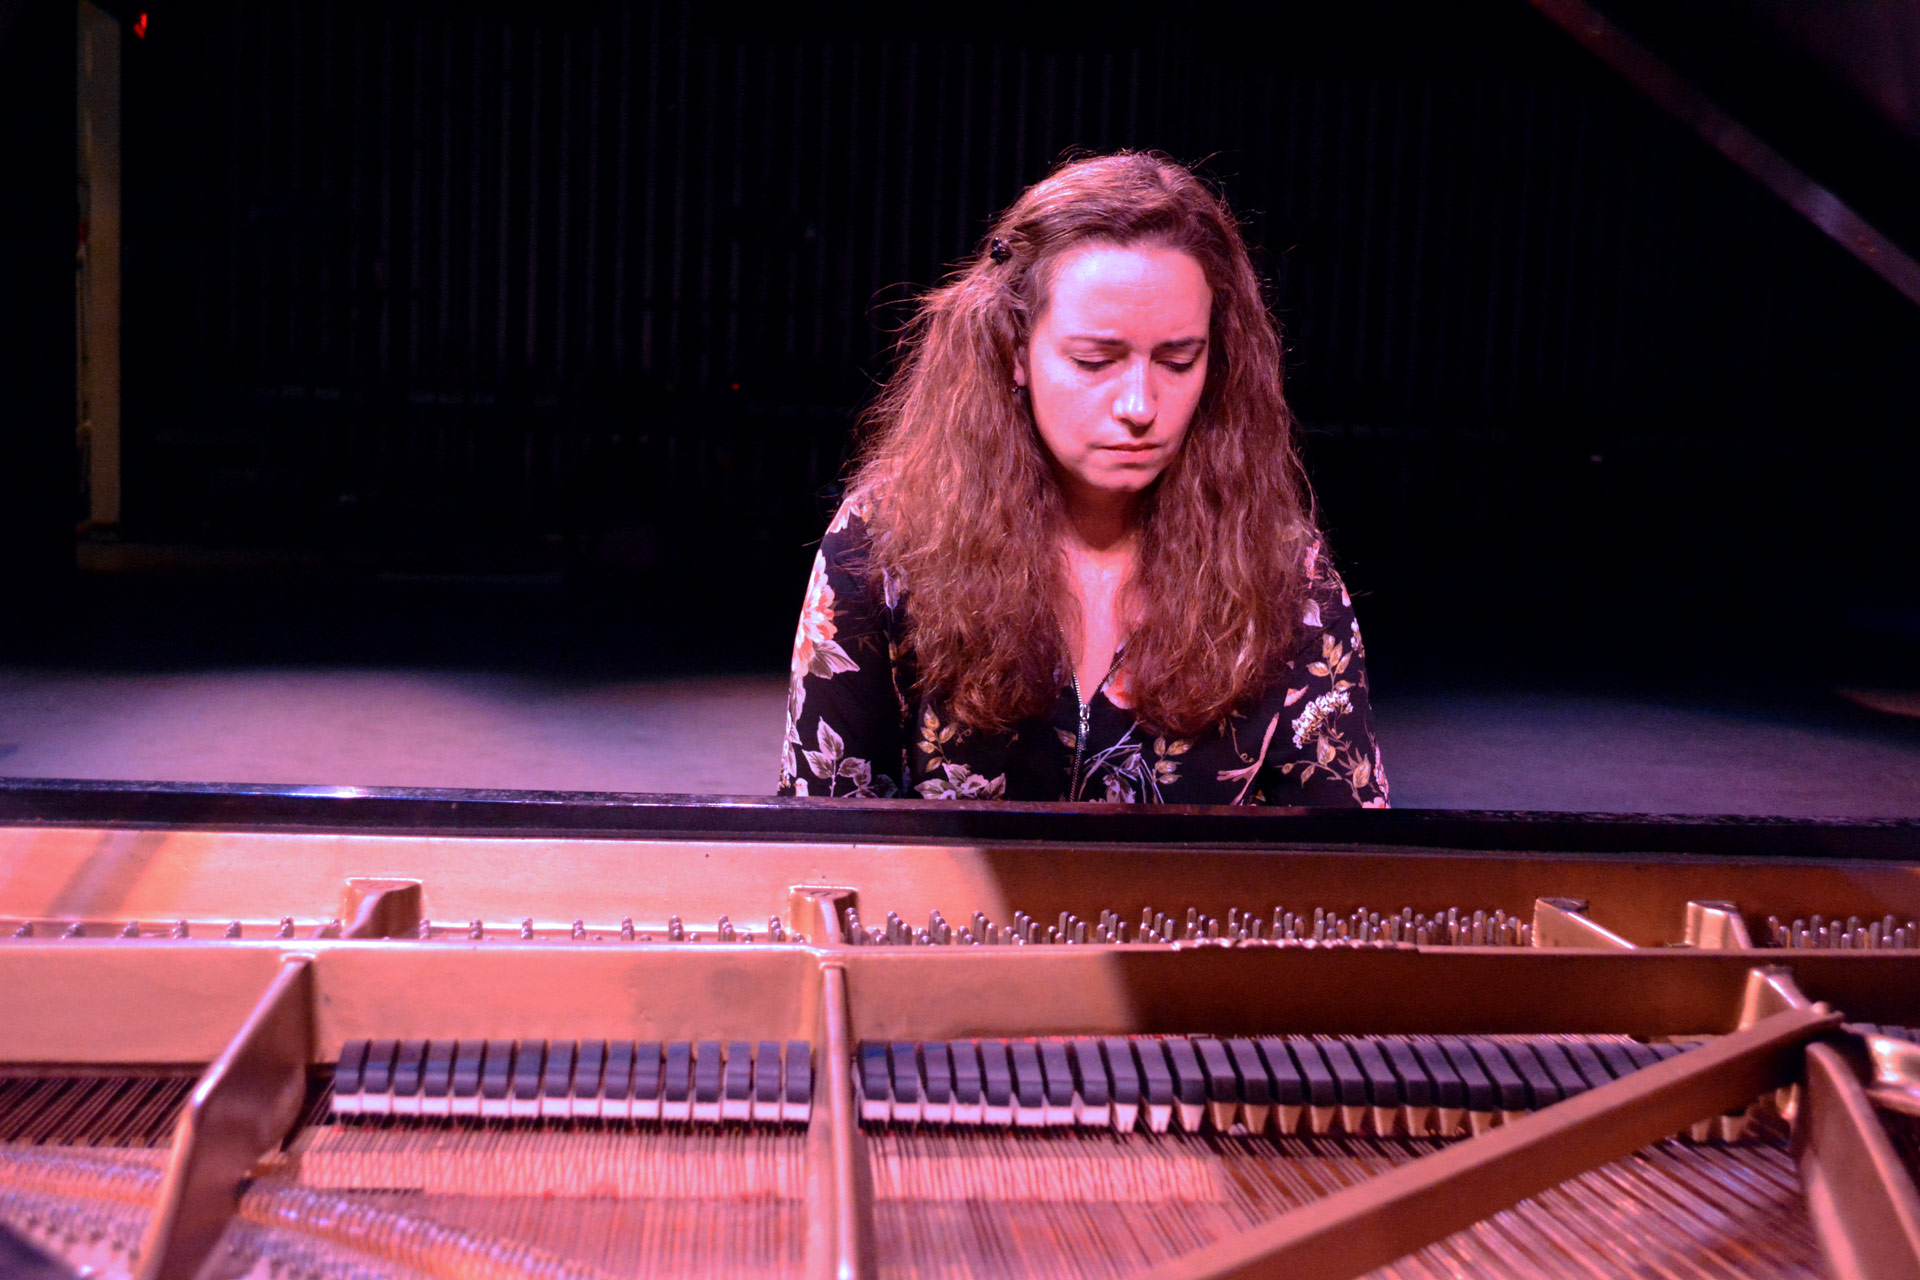 Engineering professor showcases passion for music in piano recital